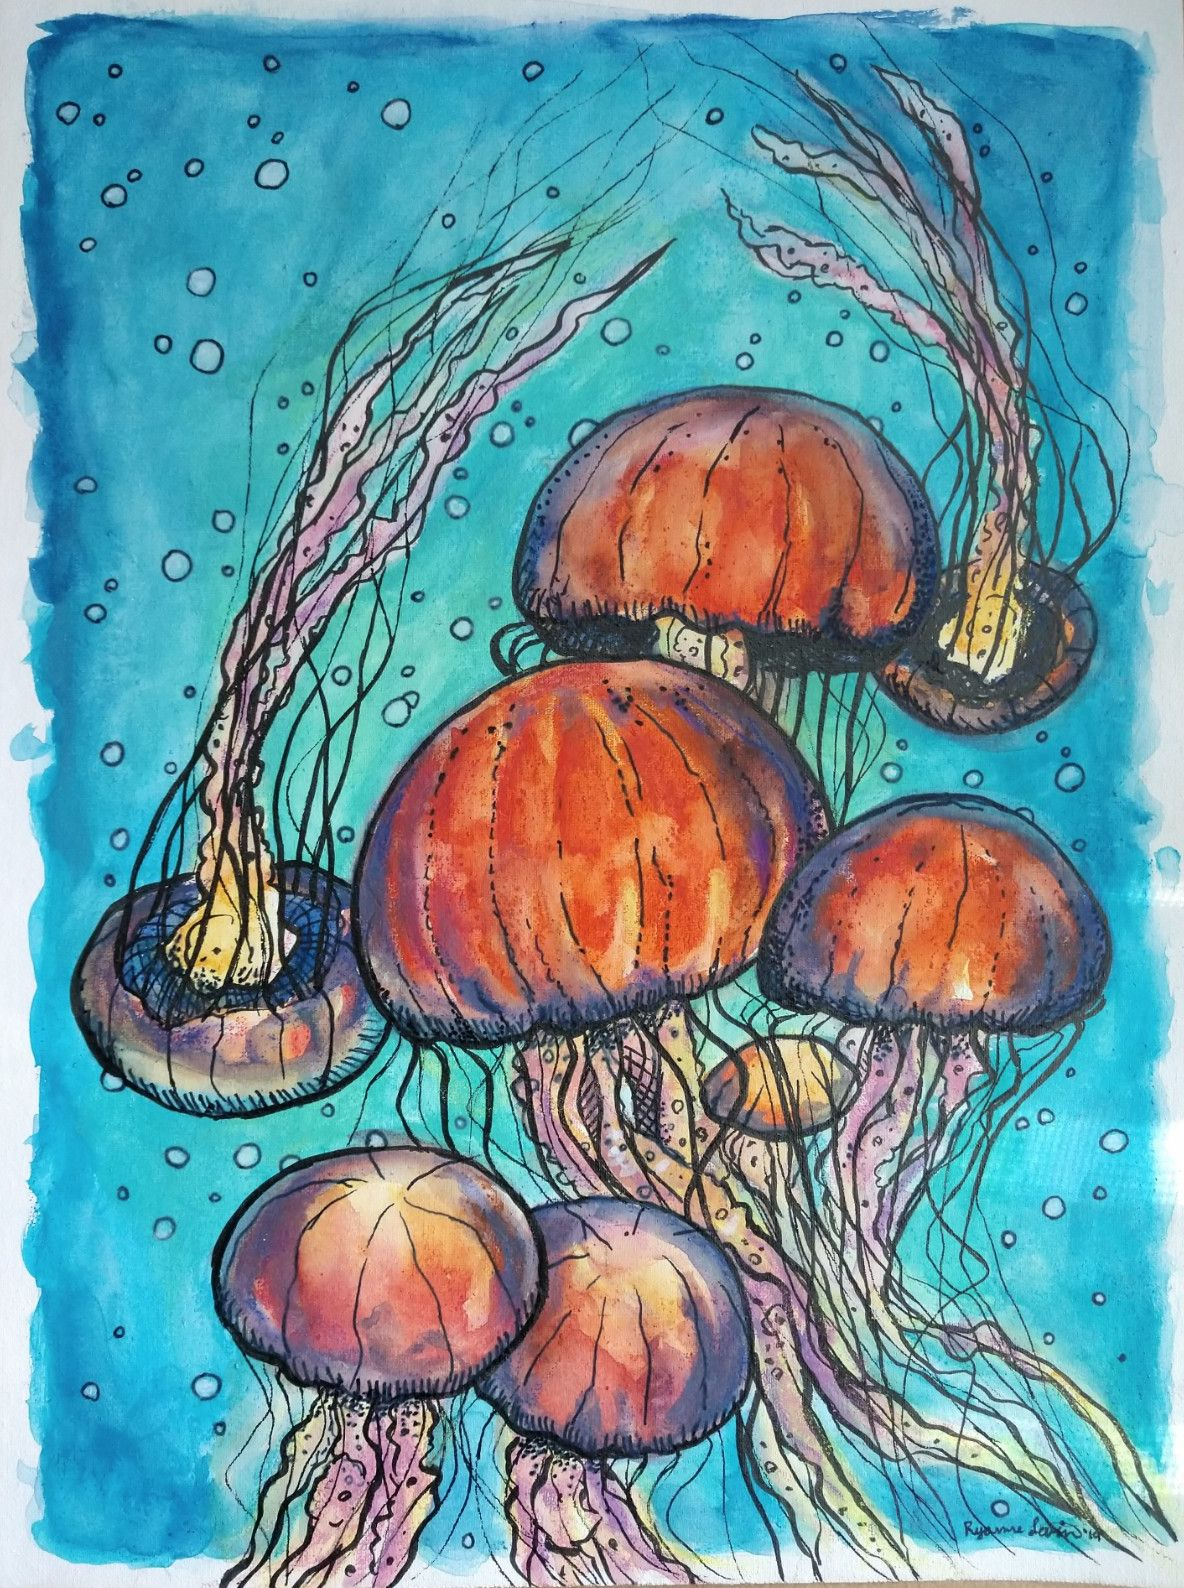 jellyrish-neocolor2-crayons-ryanne-levin-art-yes-all-media-canvas